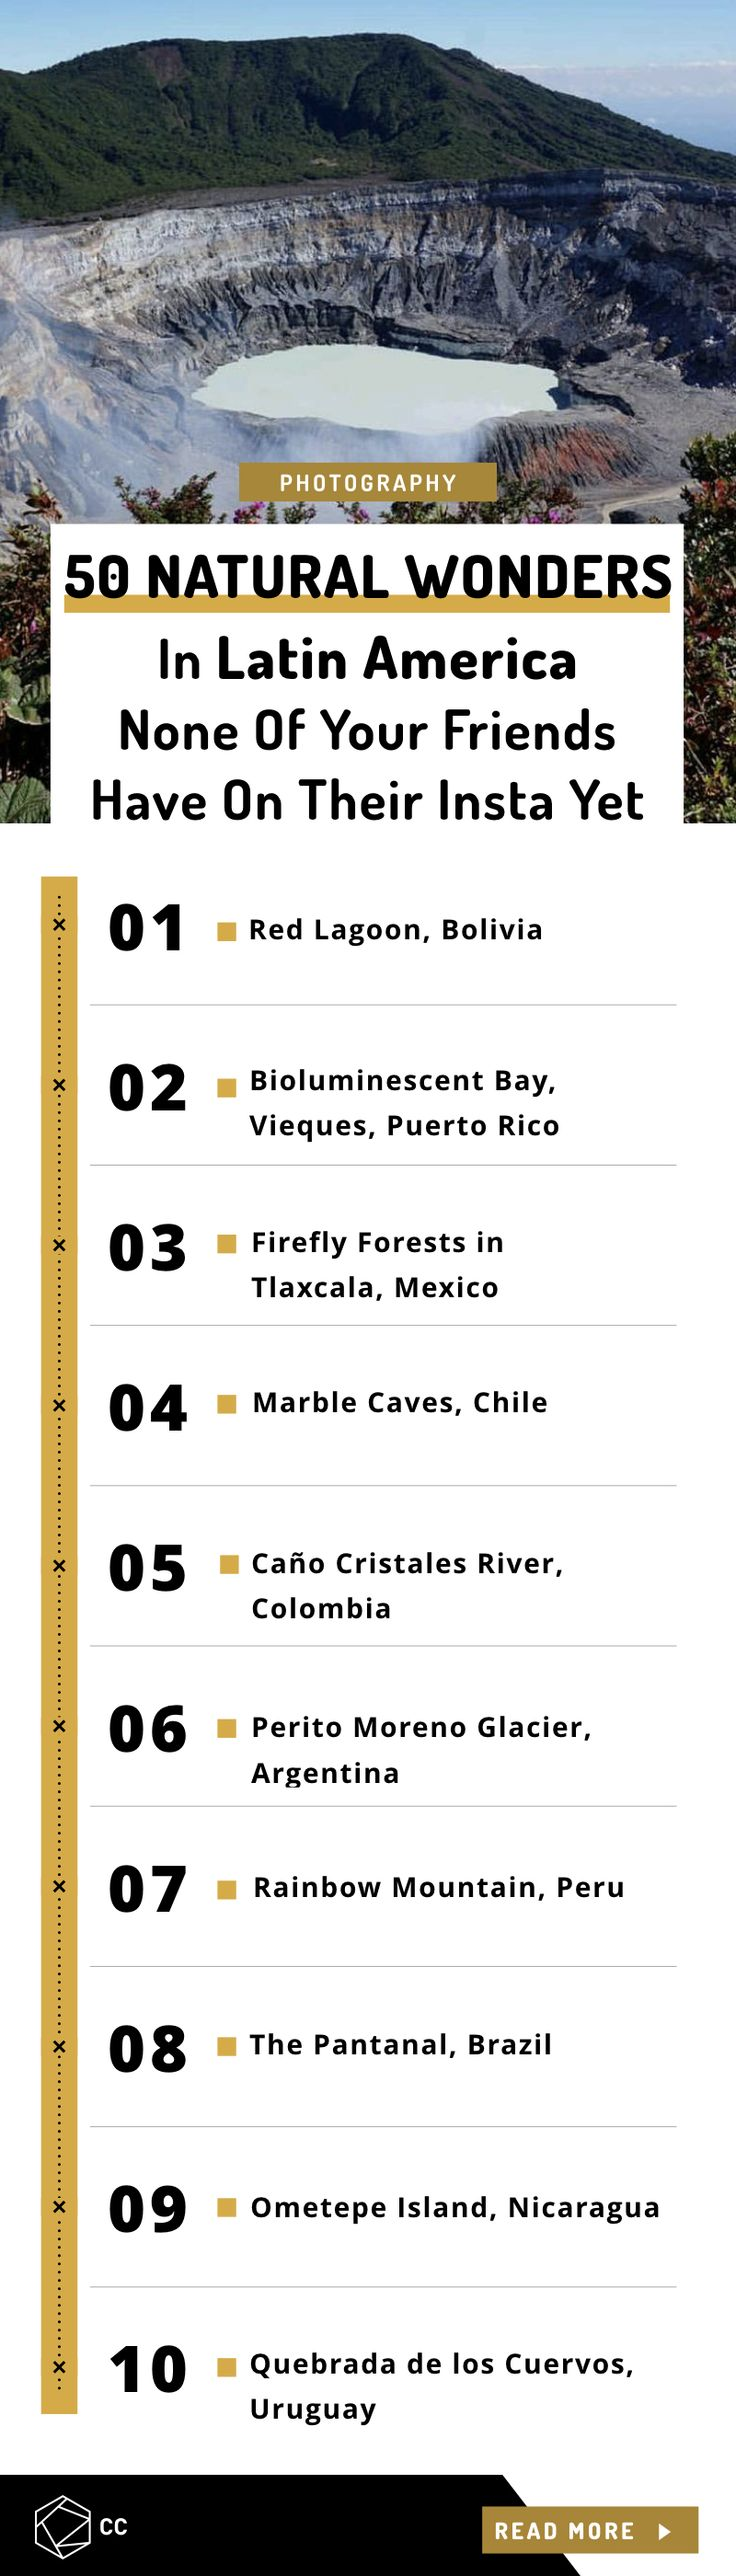 50 Natural Wonders in Latin America That None Of Your Friends Have On Their Insta Yet.  Top natural wonders in Latin America that will fill you with wanderlust and make you want to visit them. Most of them still haven't seen many travelers